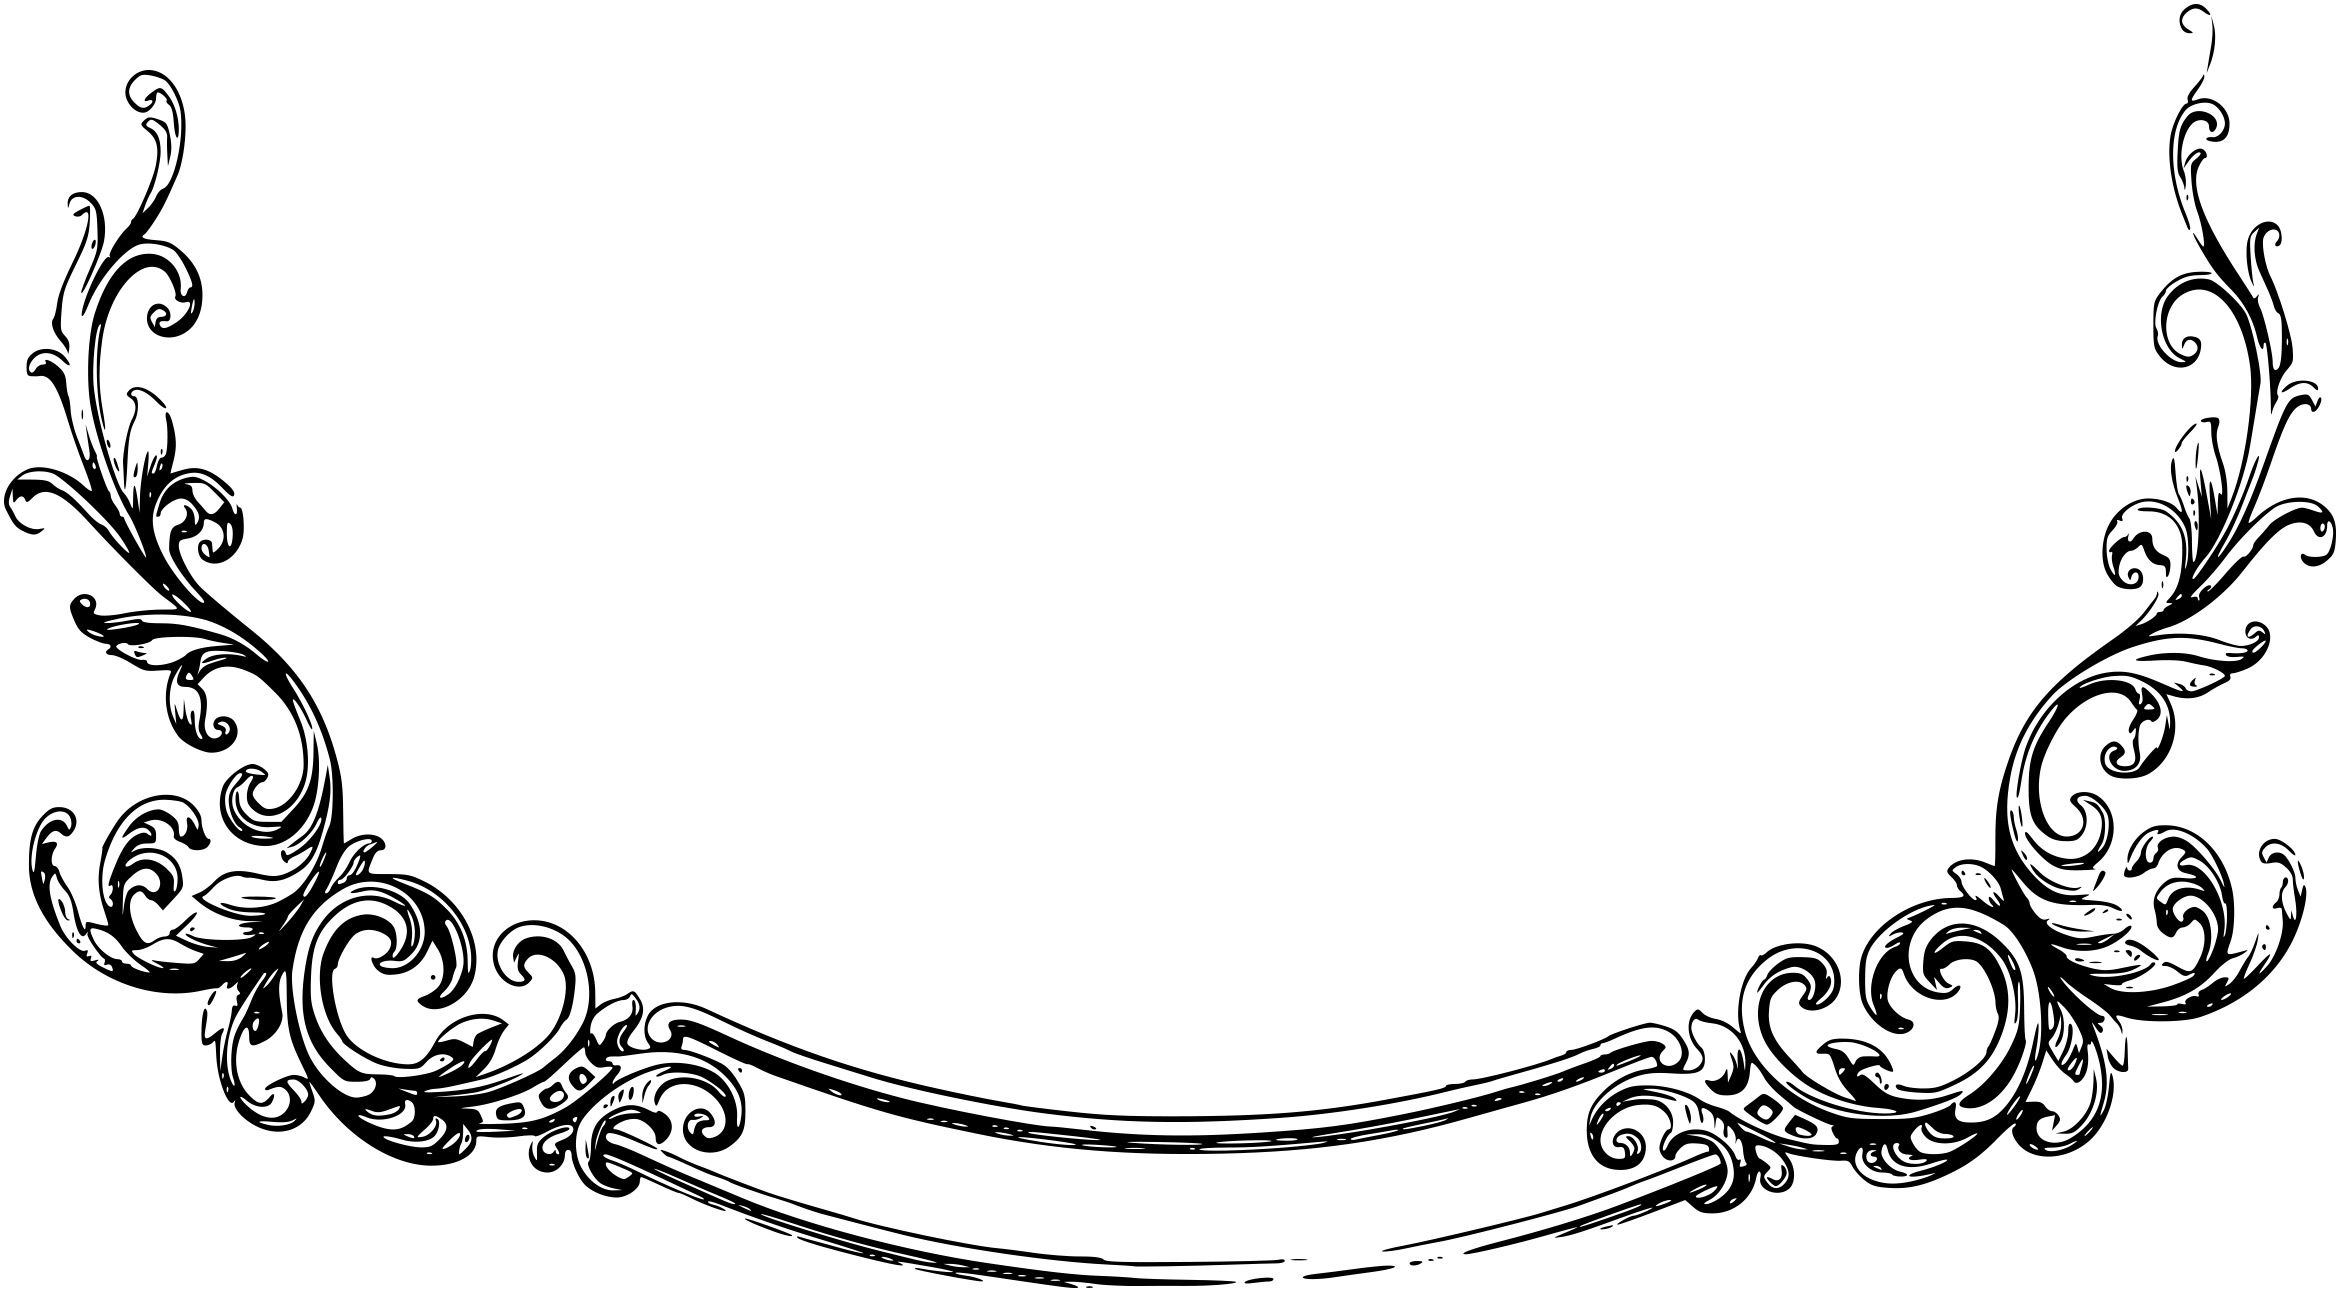 Free clipart scrollwork clip art transparent stock Scrollwork scroll artwork clipart free | Banners | Clip art, Scroll ... clip art transparent stock